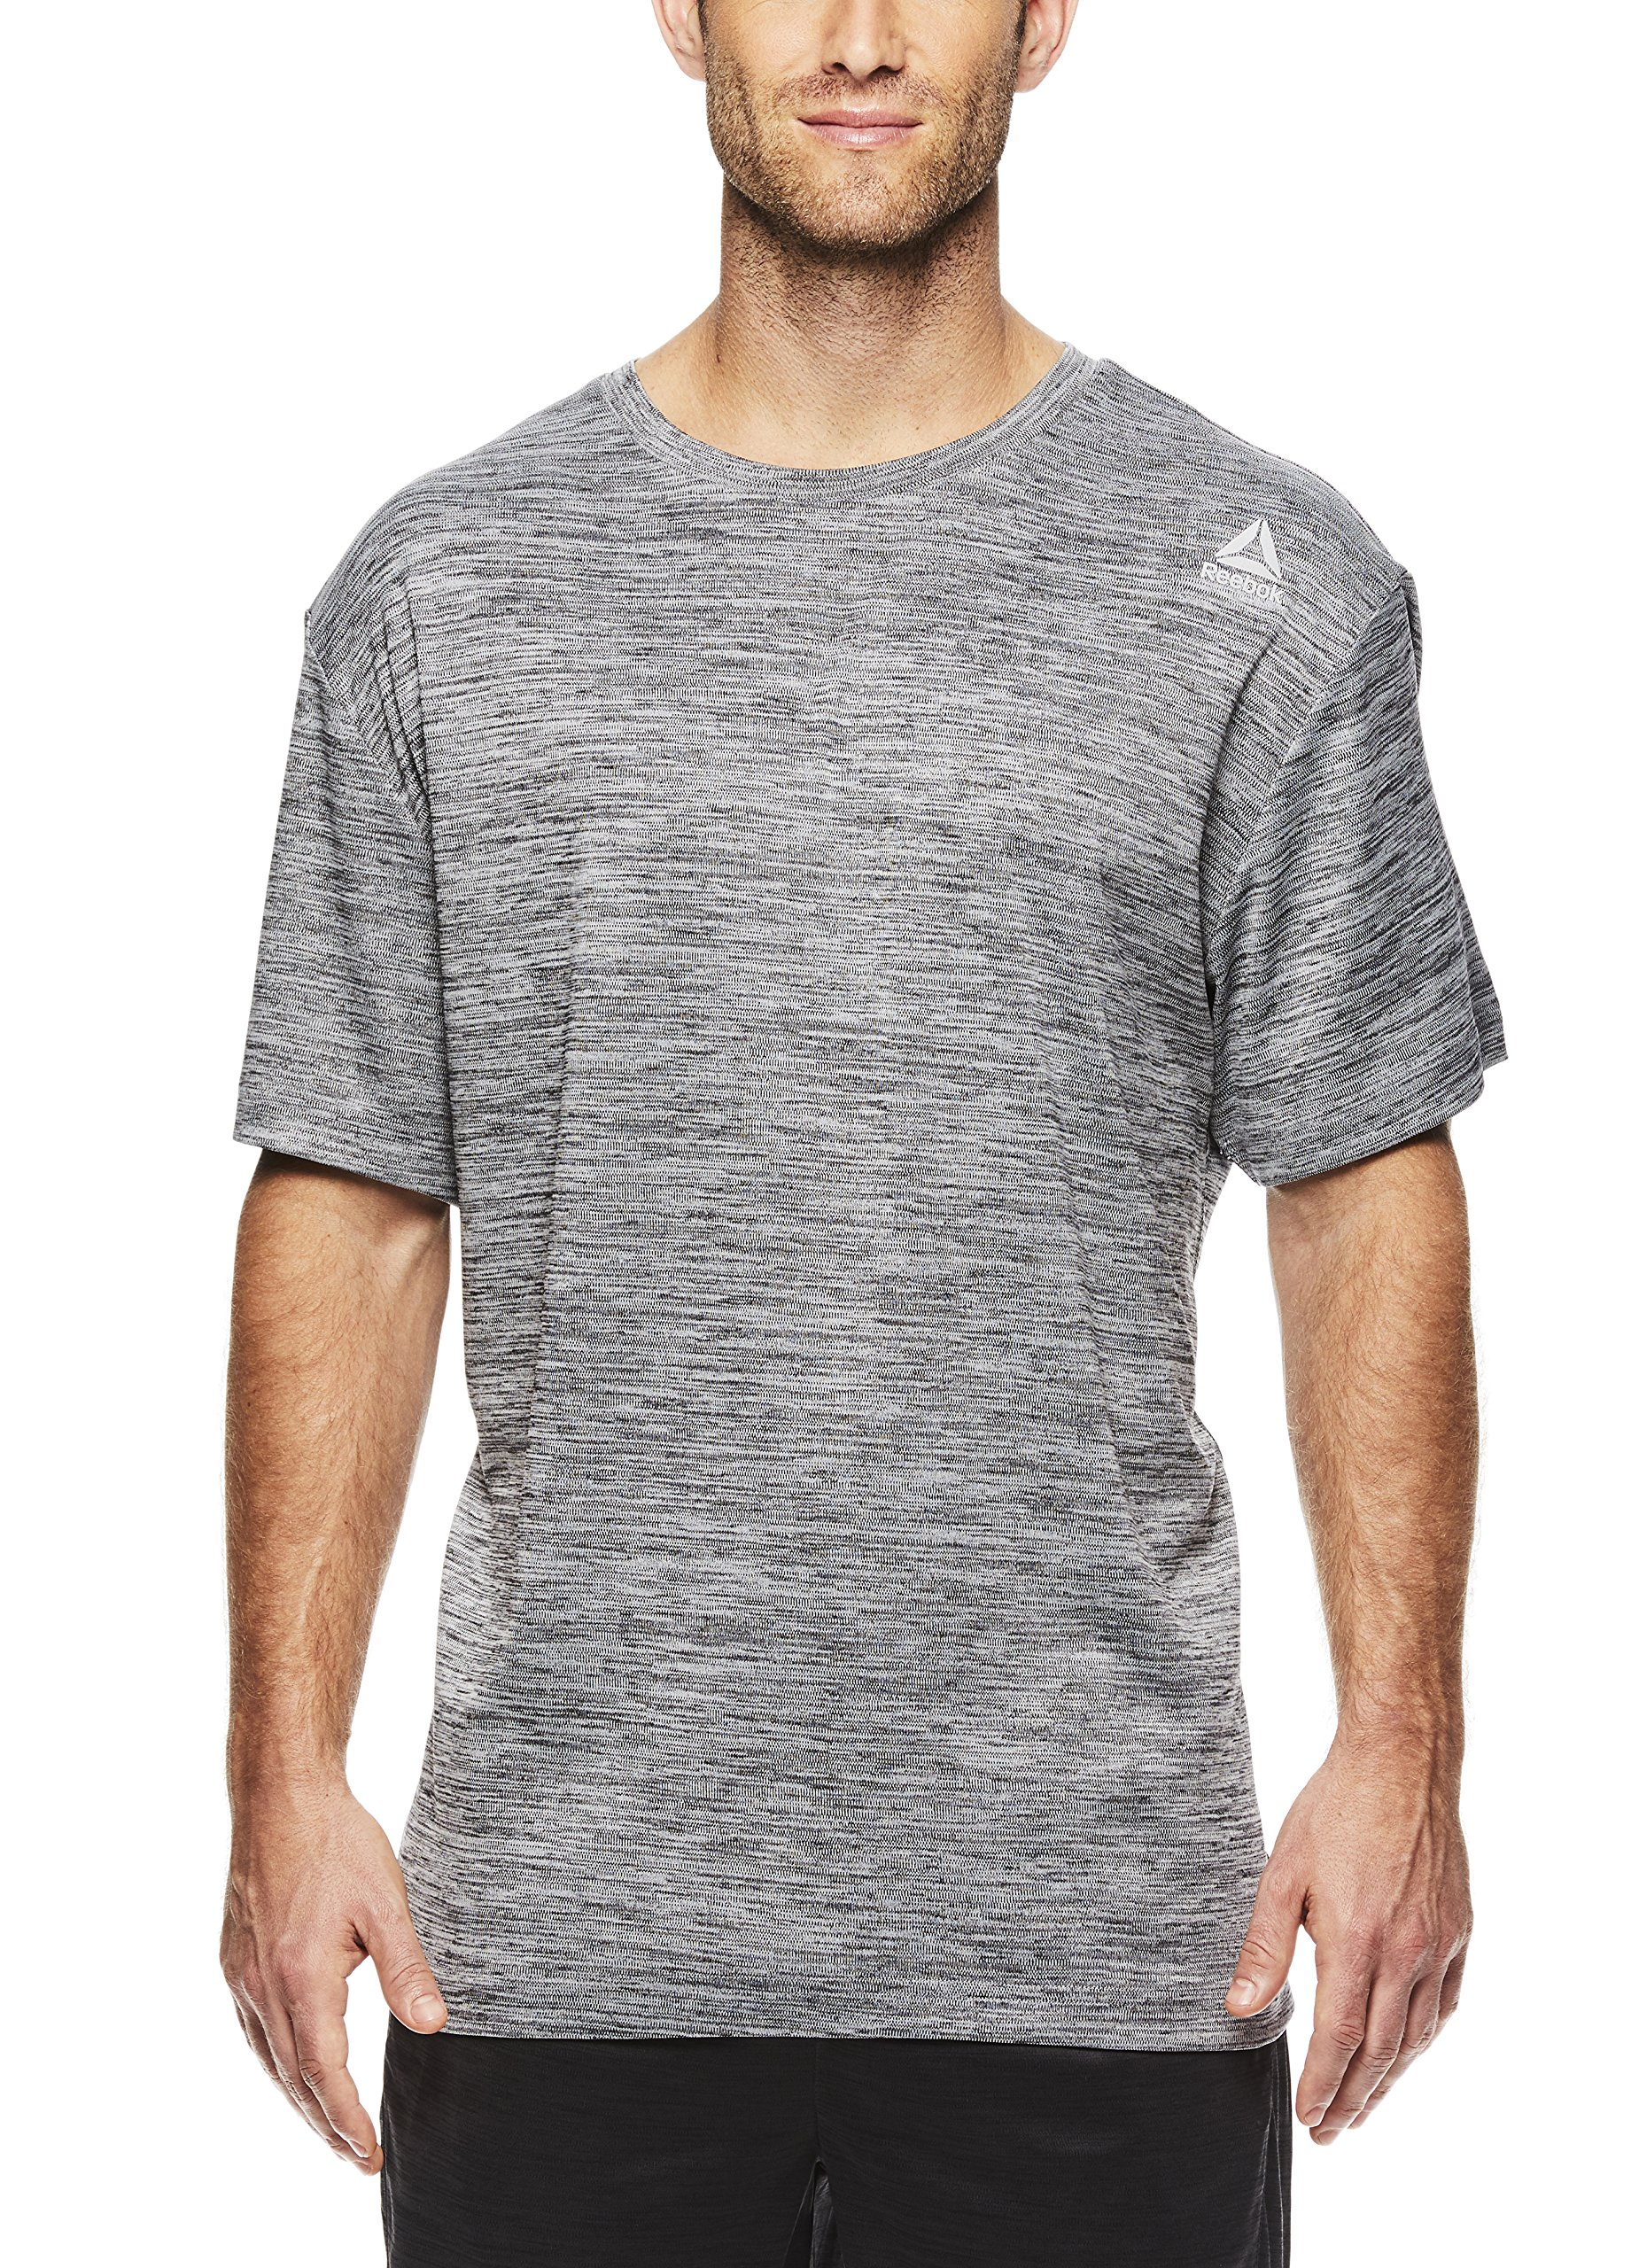 Reebok Men's Supersonic Crewneck Workout T-Shirt Designed with Performance Material - Dark Shade Space Dye Grey, Small